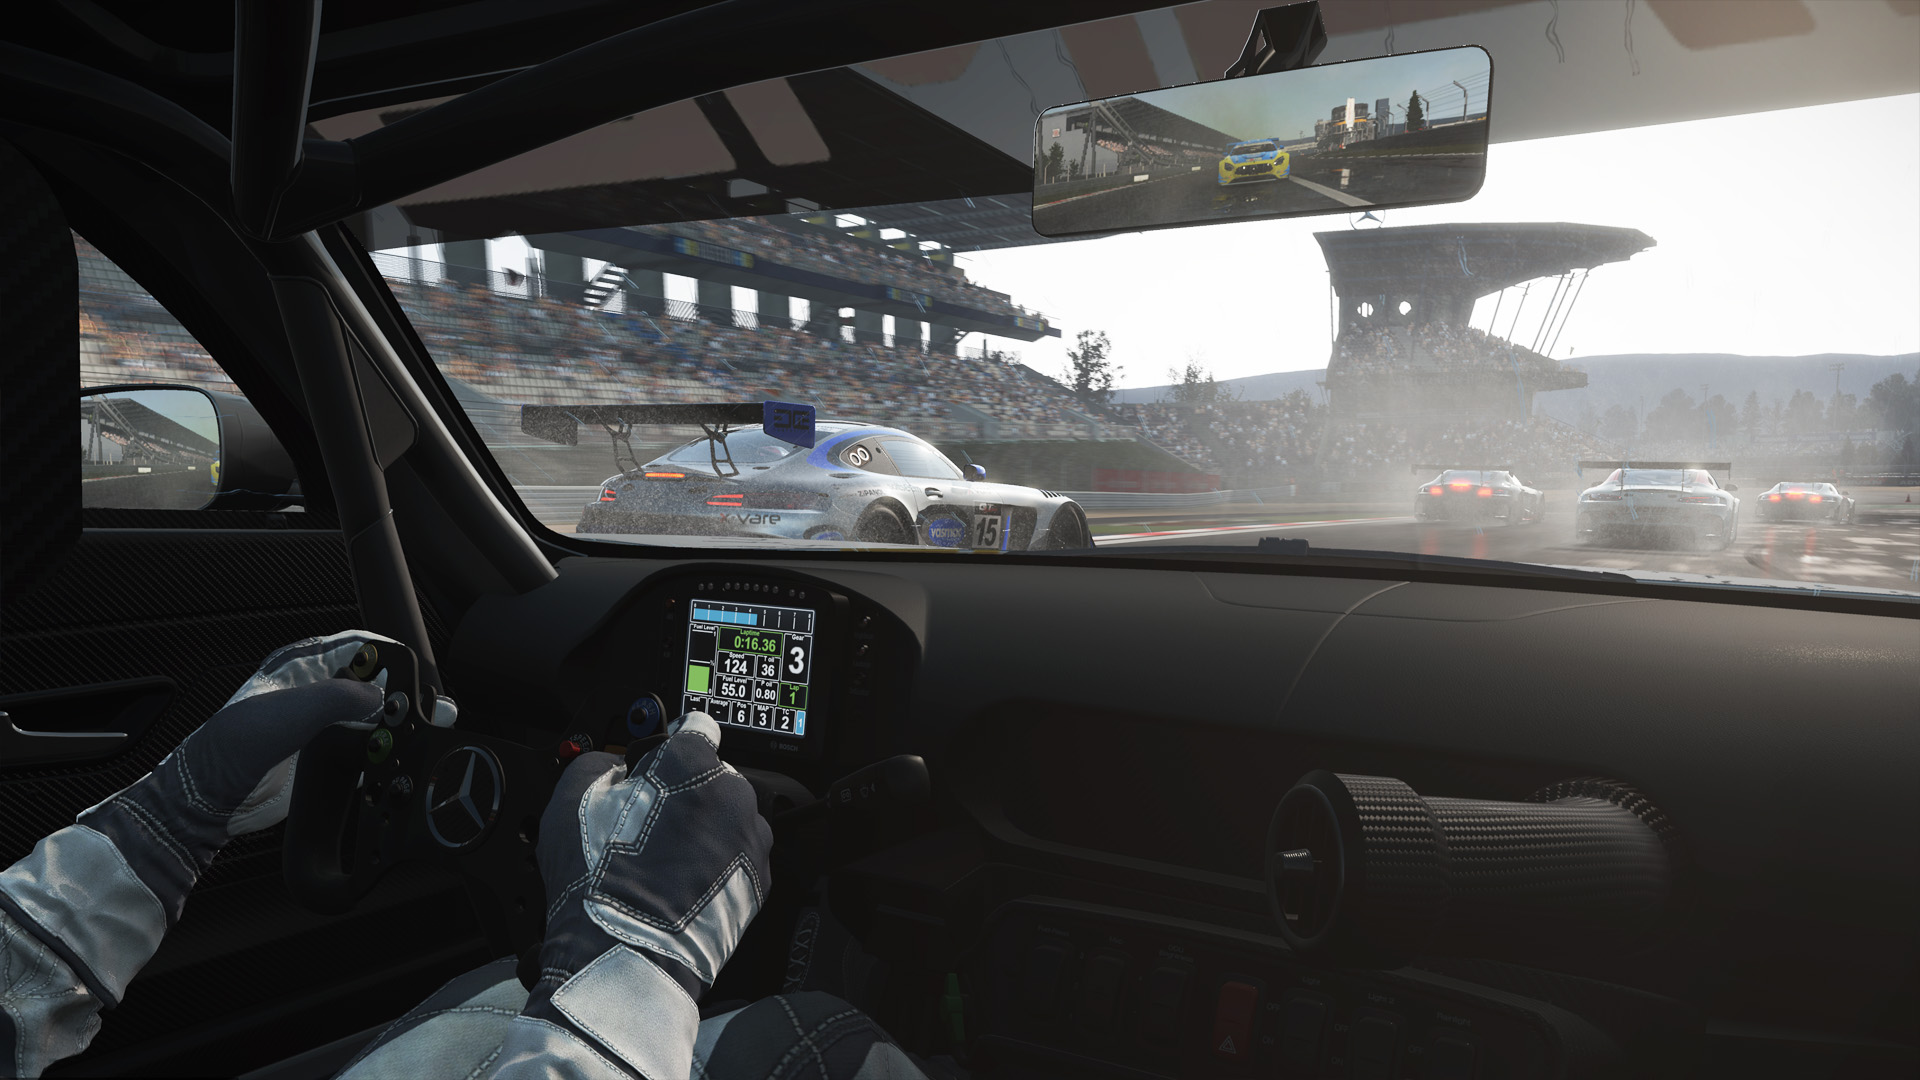 Project cars new mercedes amg gt3 previews virtualr sim racing - Ss134935_1